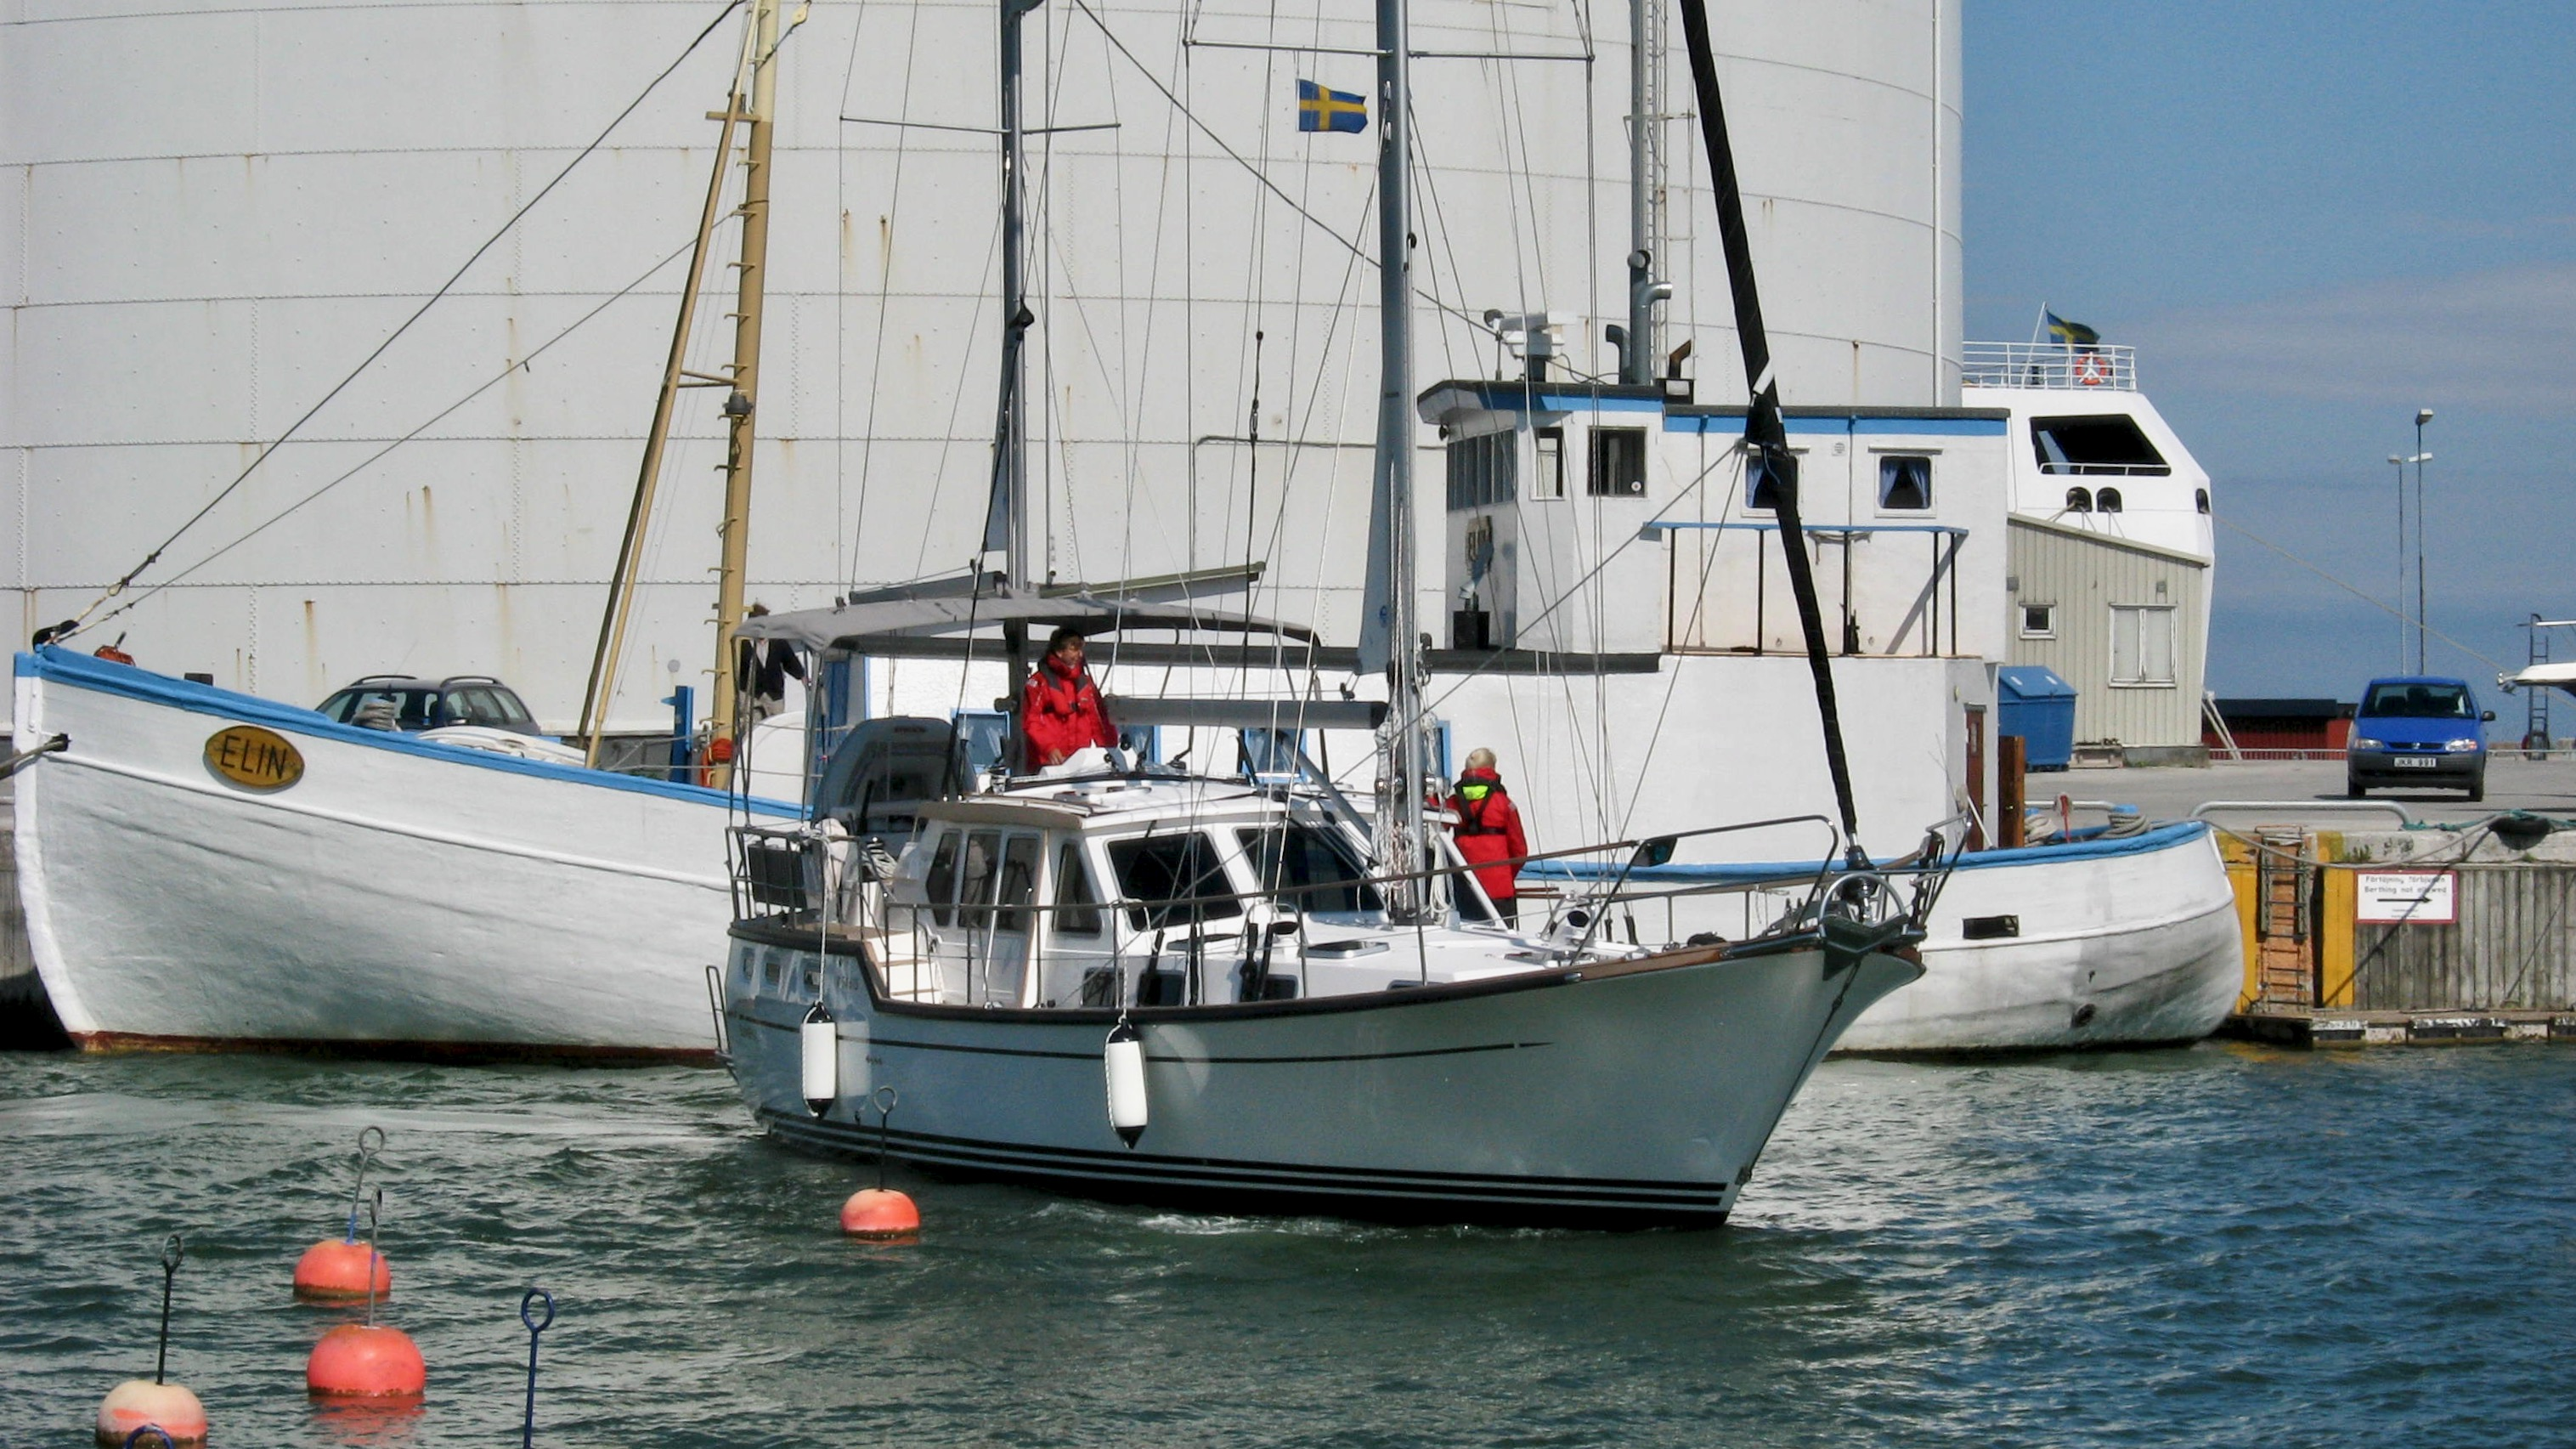 Suwena arriving in Visby